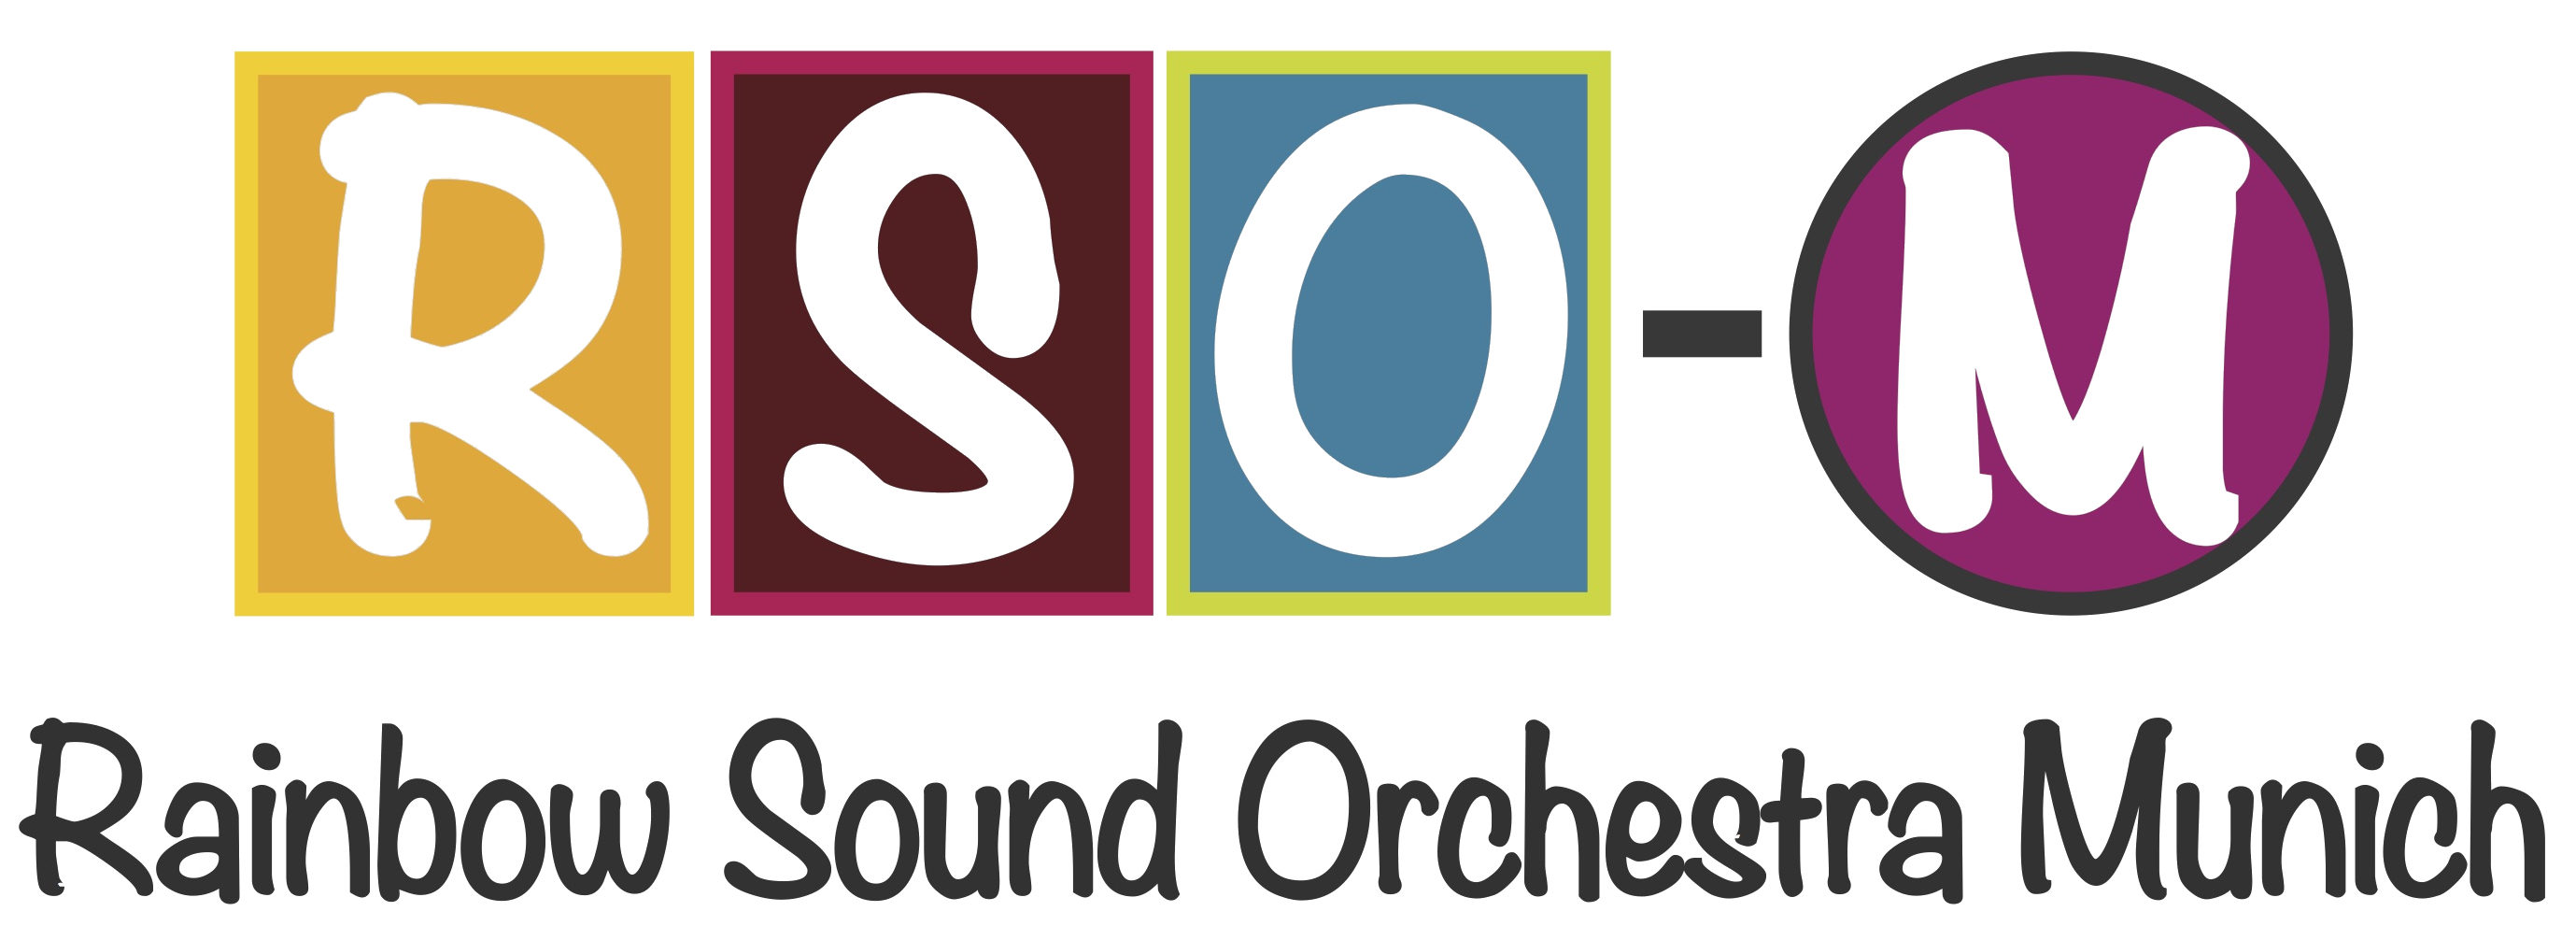 Rainbow Sound Orchestra Munich